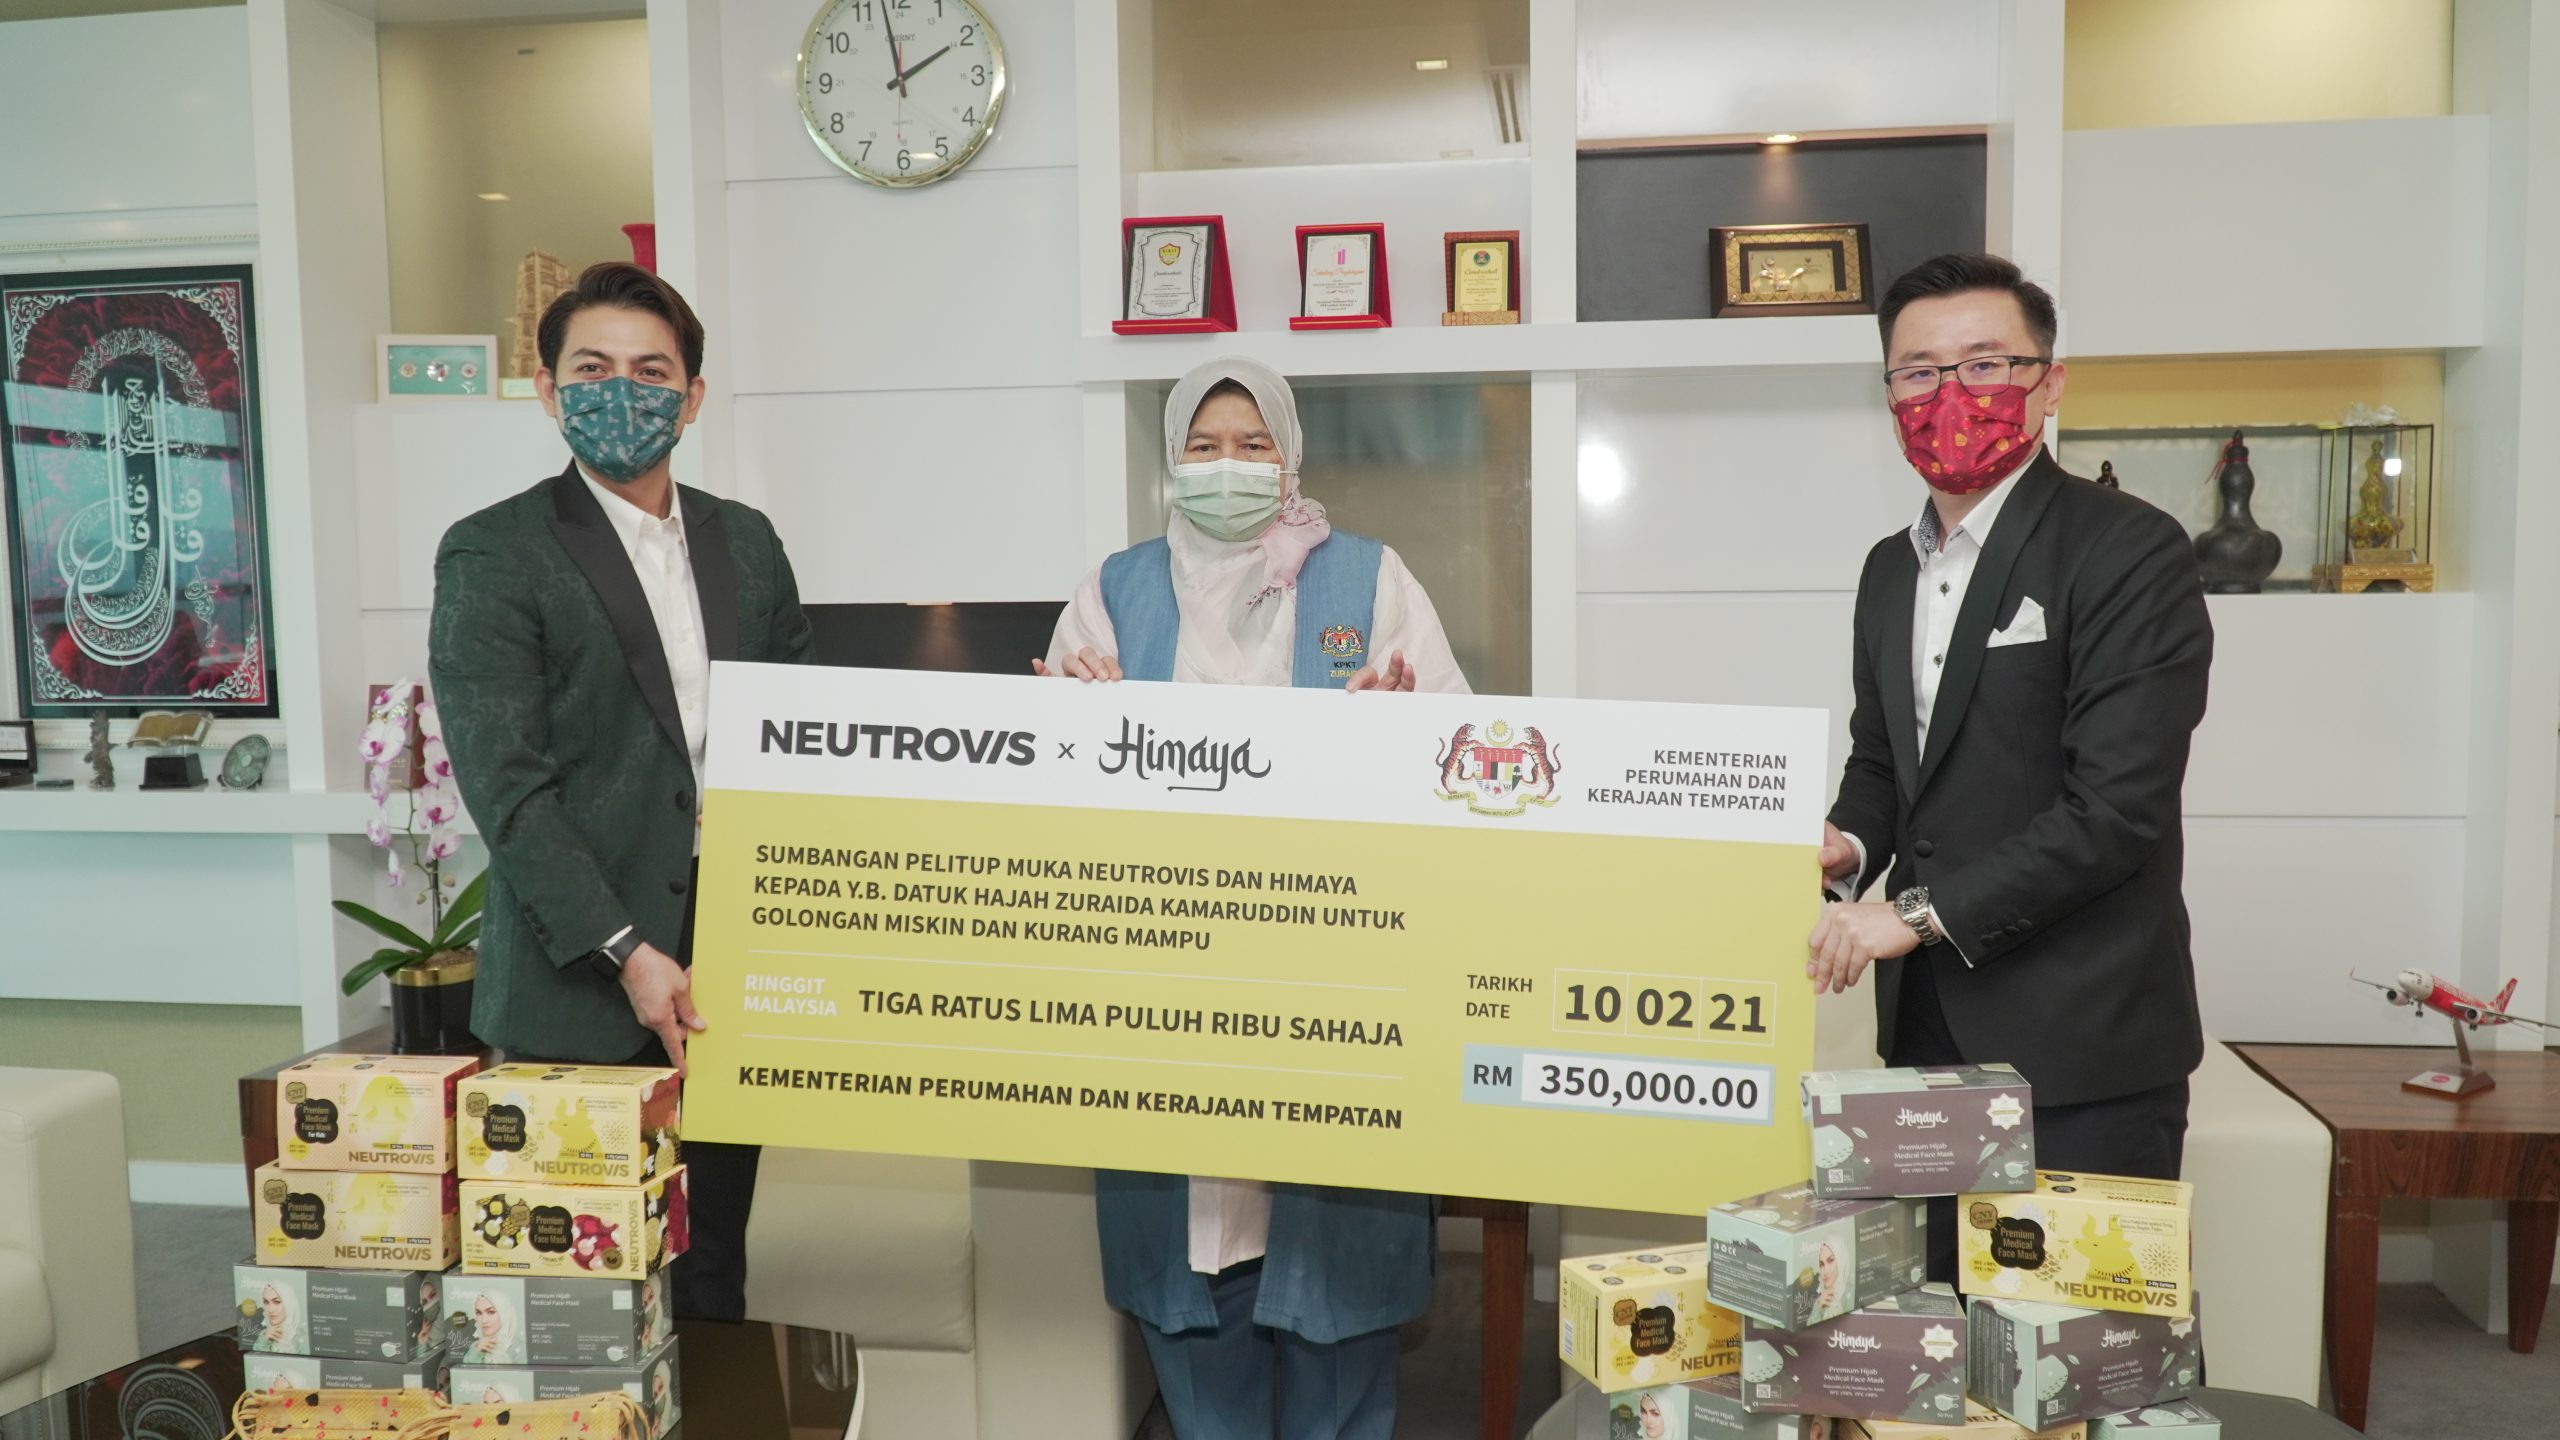 This initiative by Neutrovis and Himaya was launched in spirit of the Chinese New Year celebration, keeping frontliners and the B40 in mind, to lessen the burden